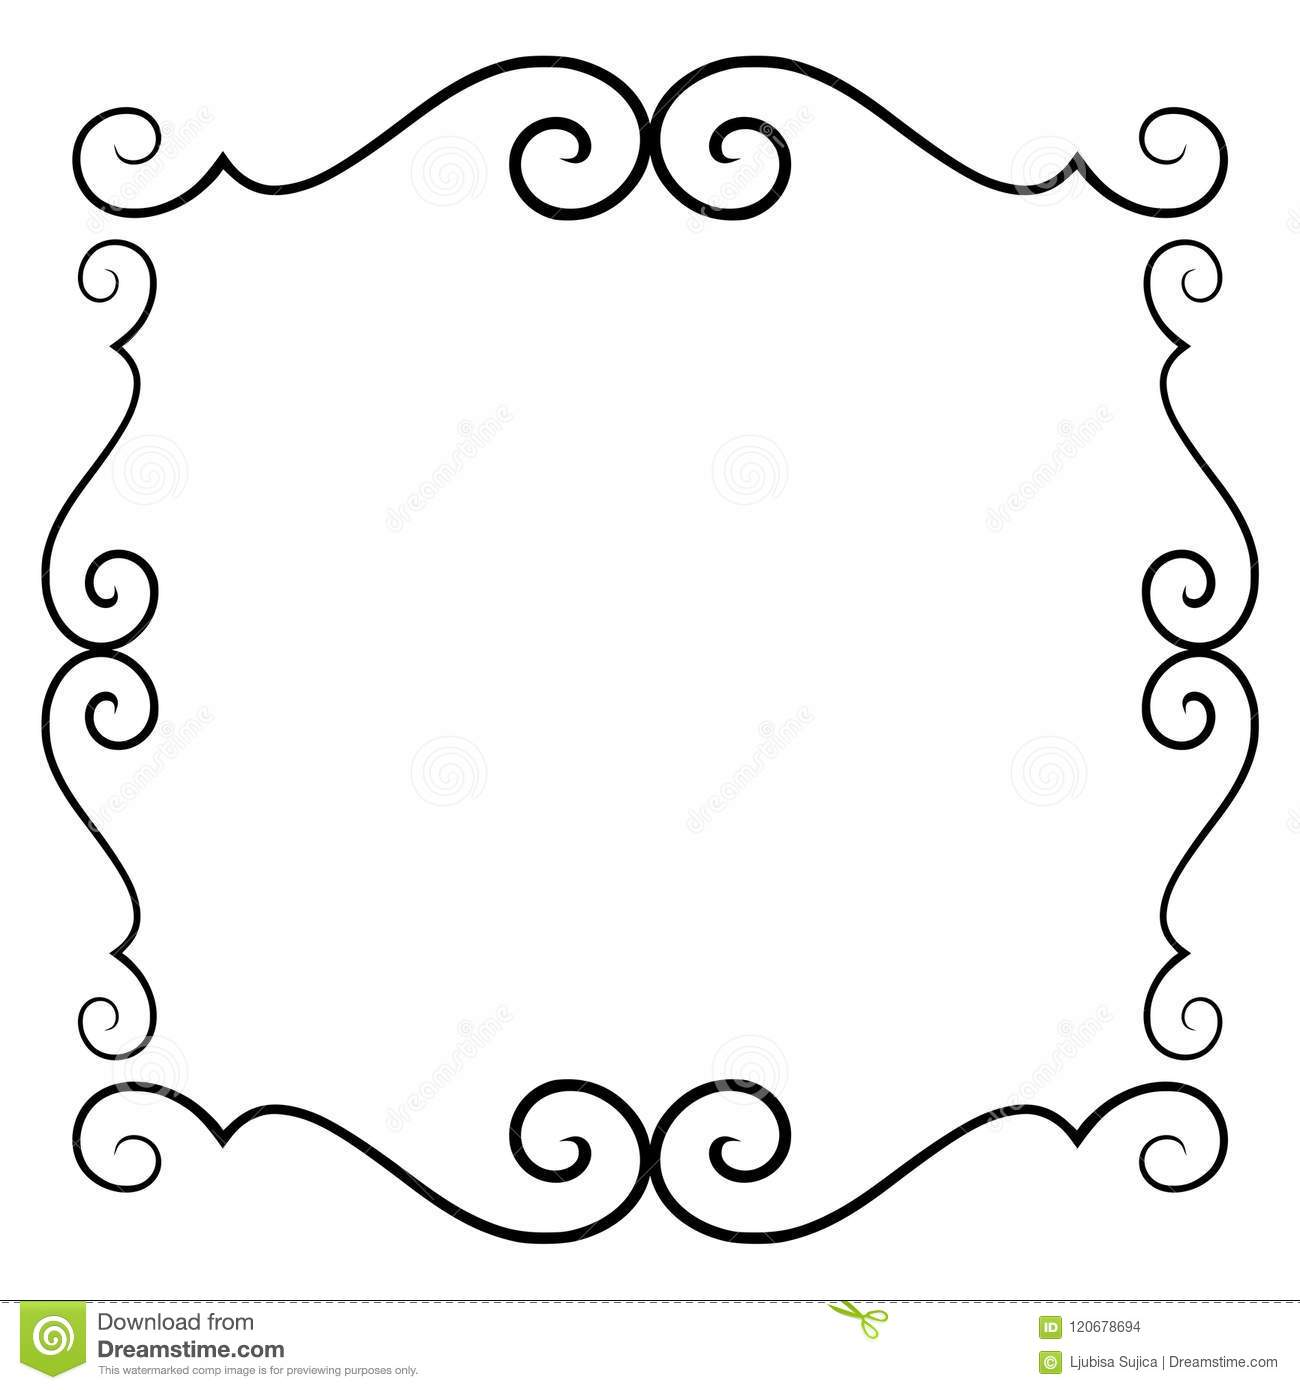 Decorative Black Flower Border Stock Image: Black White Decorative Background Stock Illustrations